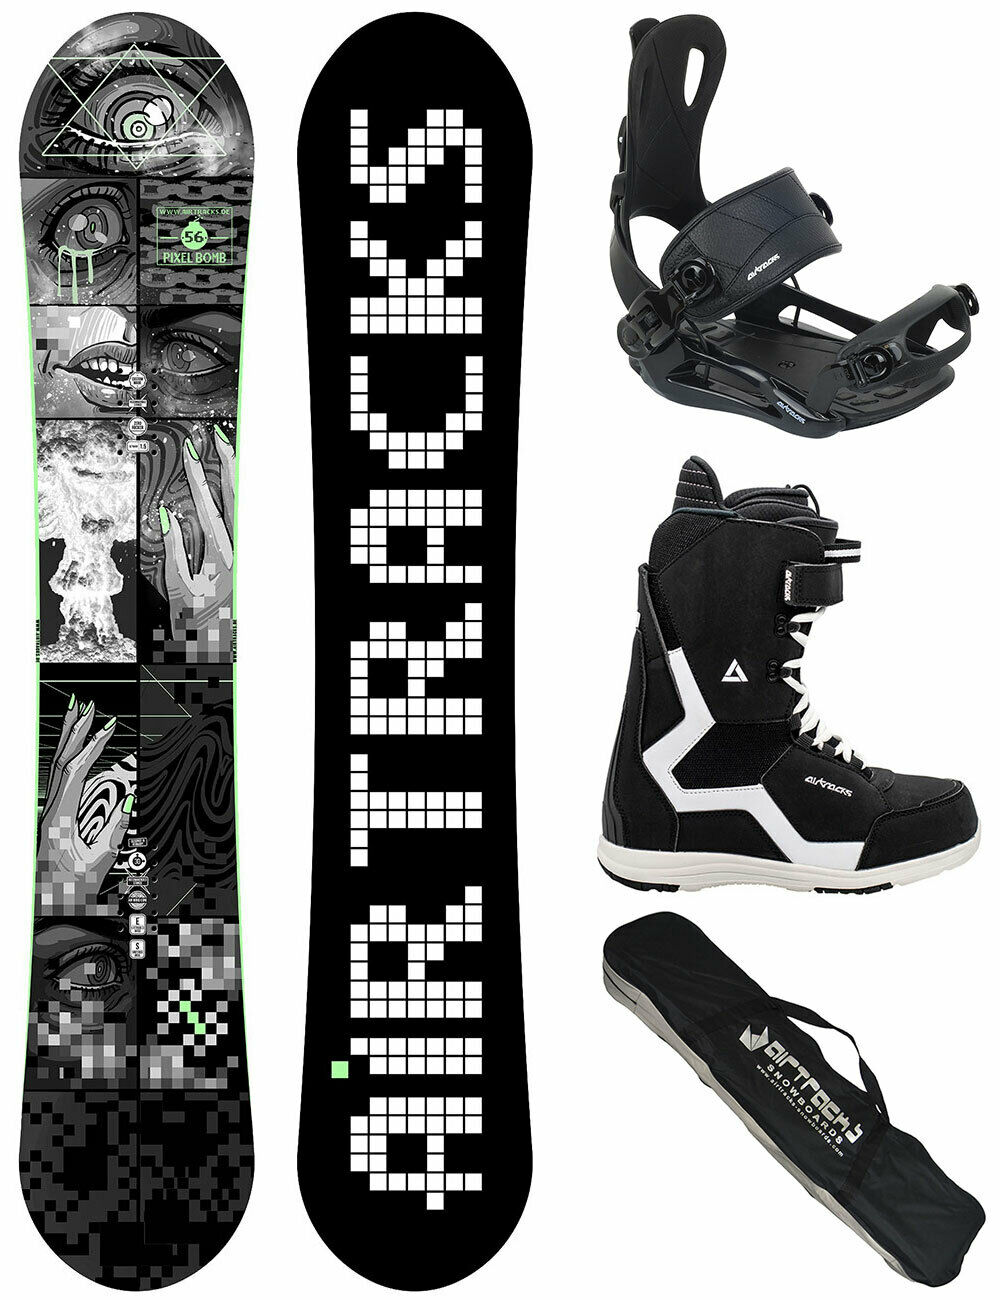 AIRTRACKS Snowboard Set Pixel Bomb Carbon+Bindung Master+Stiefel+Bag 153 158 163cm